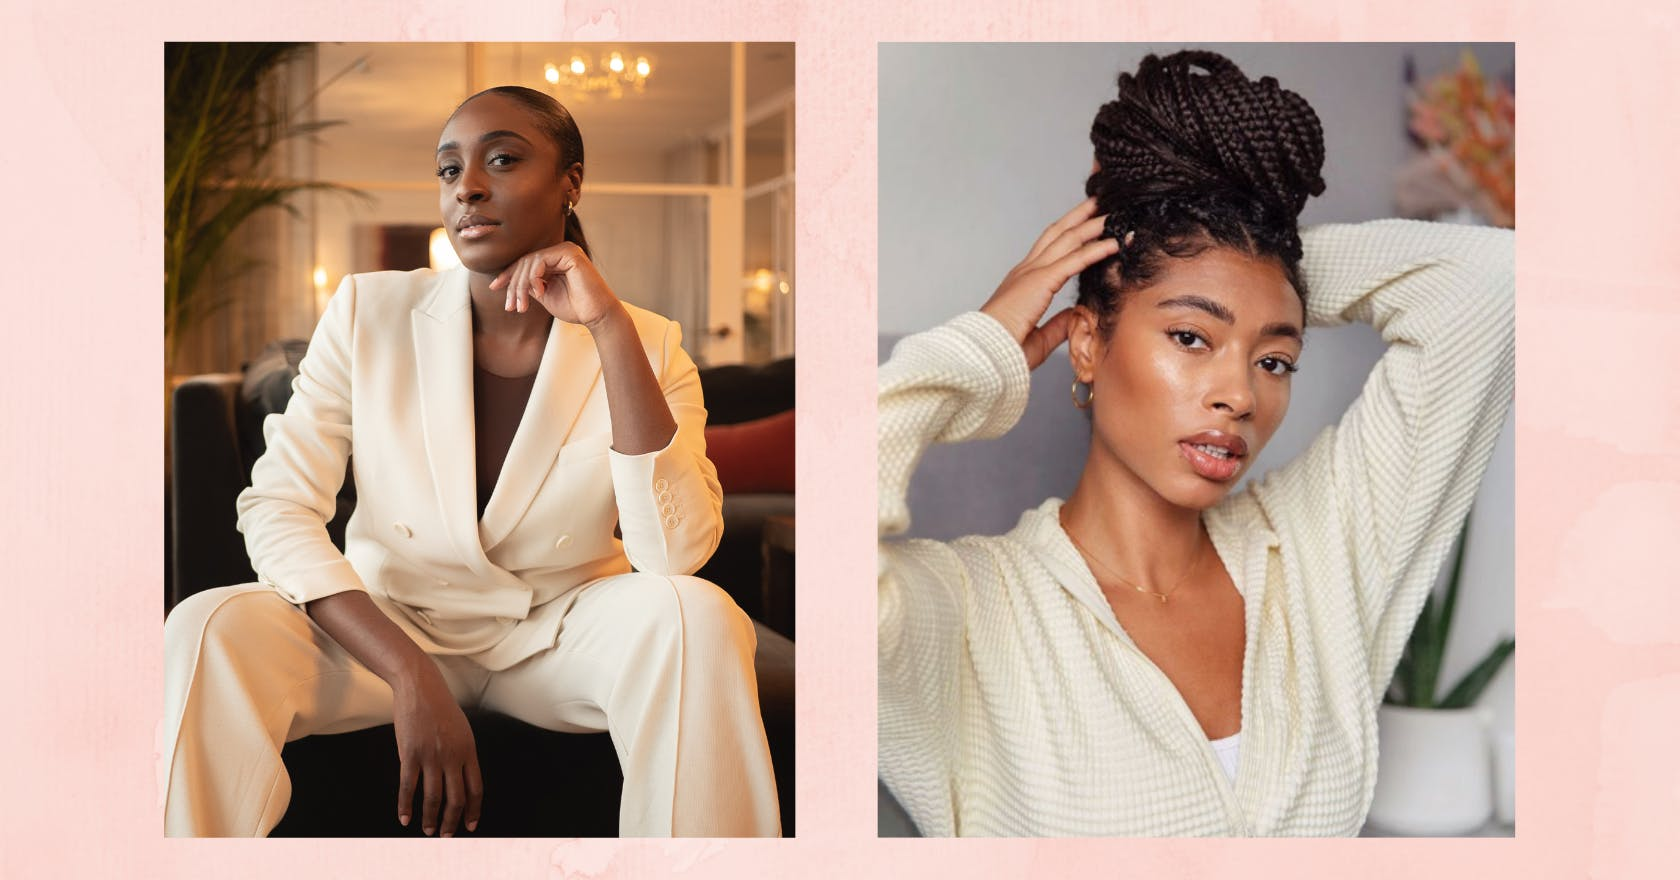 The best styling products for afro hair, according to 5 women who know